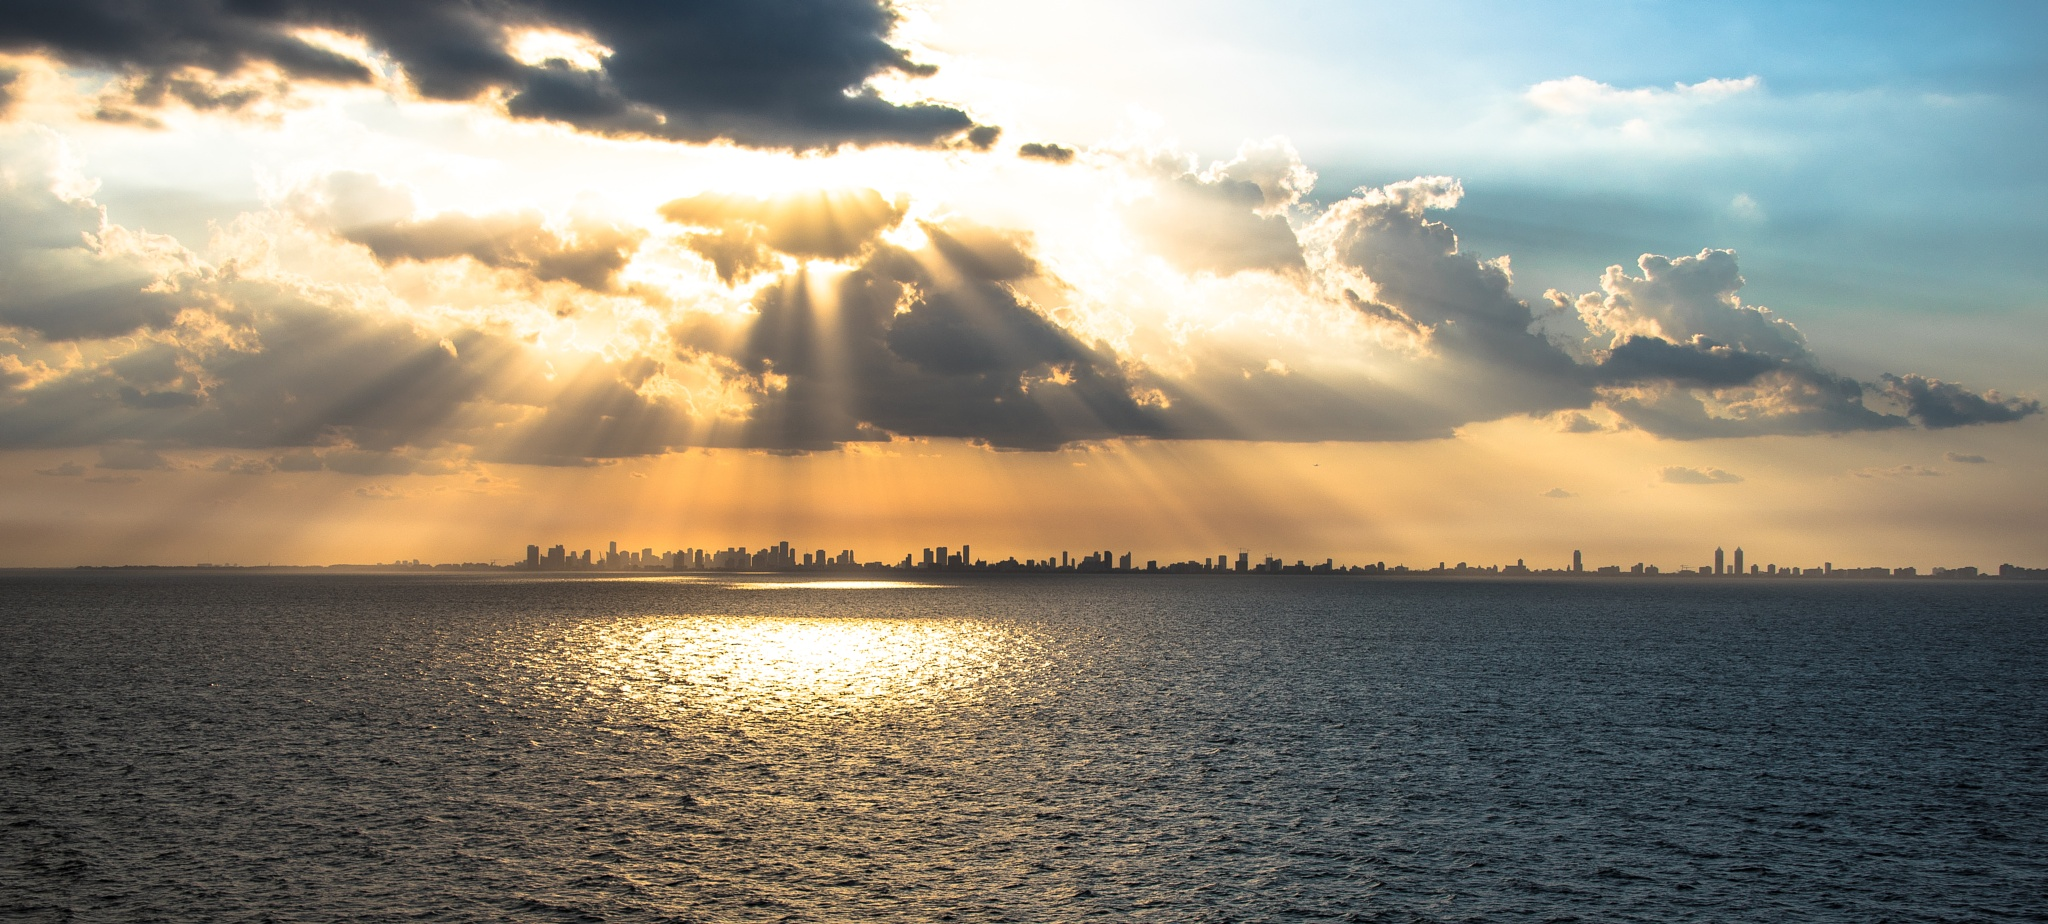 Miami Sunset by SAFIRE PHOTO